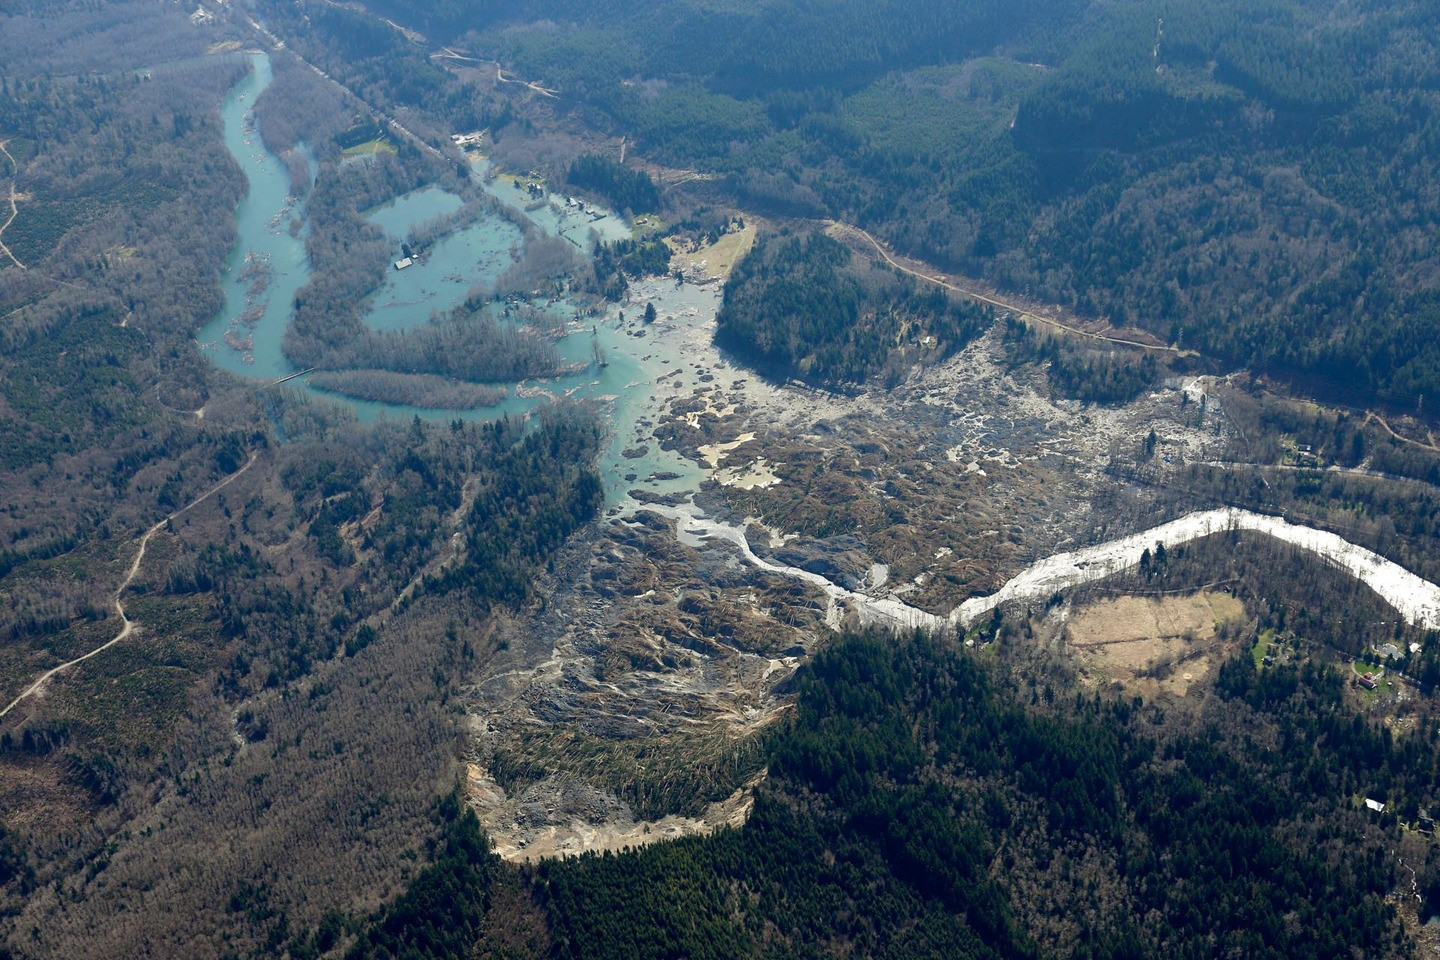 Oso Washington Mudslide